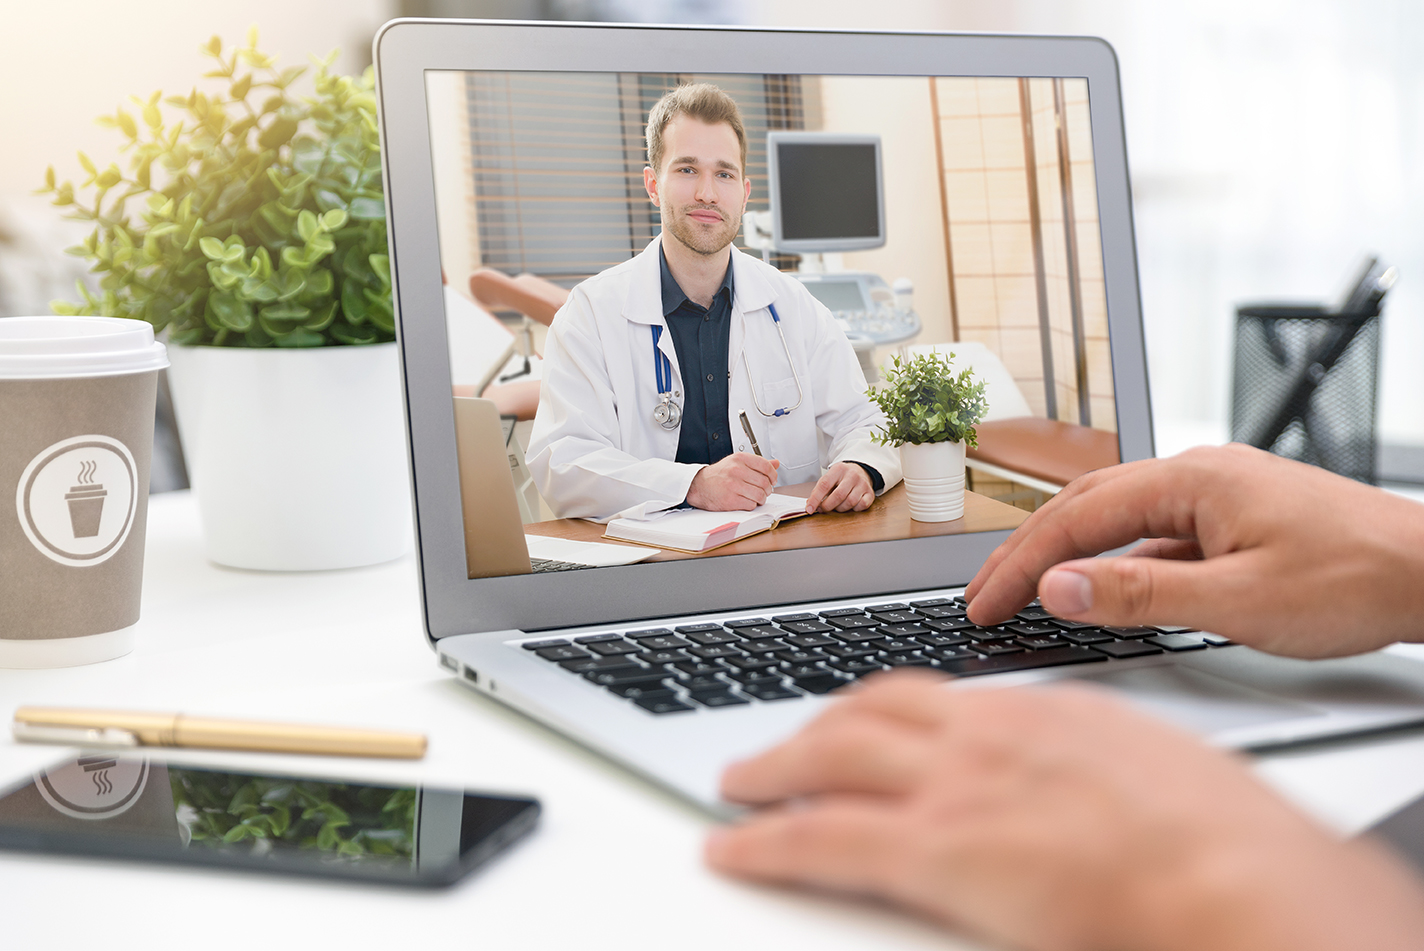 Telehealth Services for Addressing Mental Health